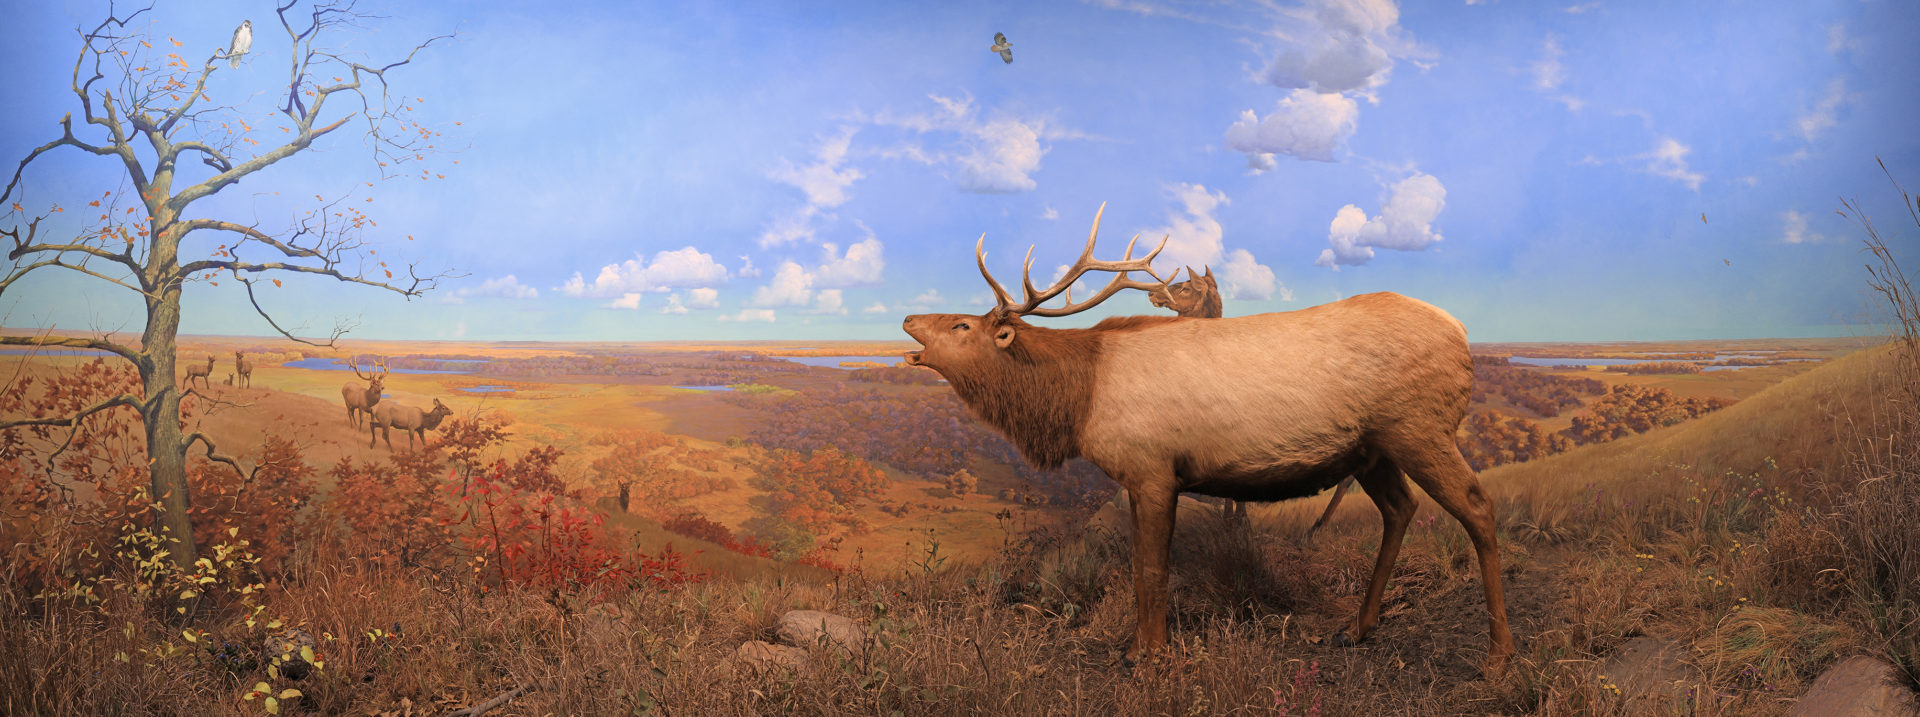 elk at inspiration point diorama, shows a herd of elk in a grassland in autumn